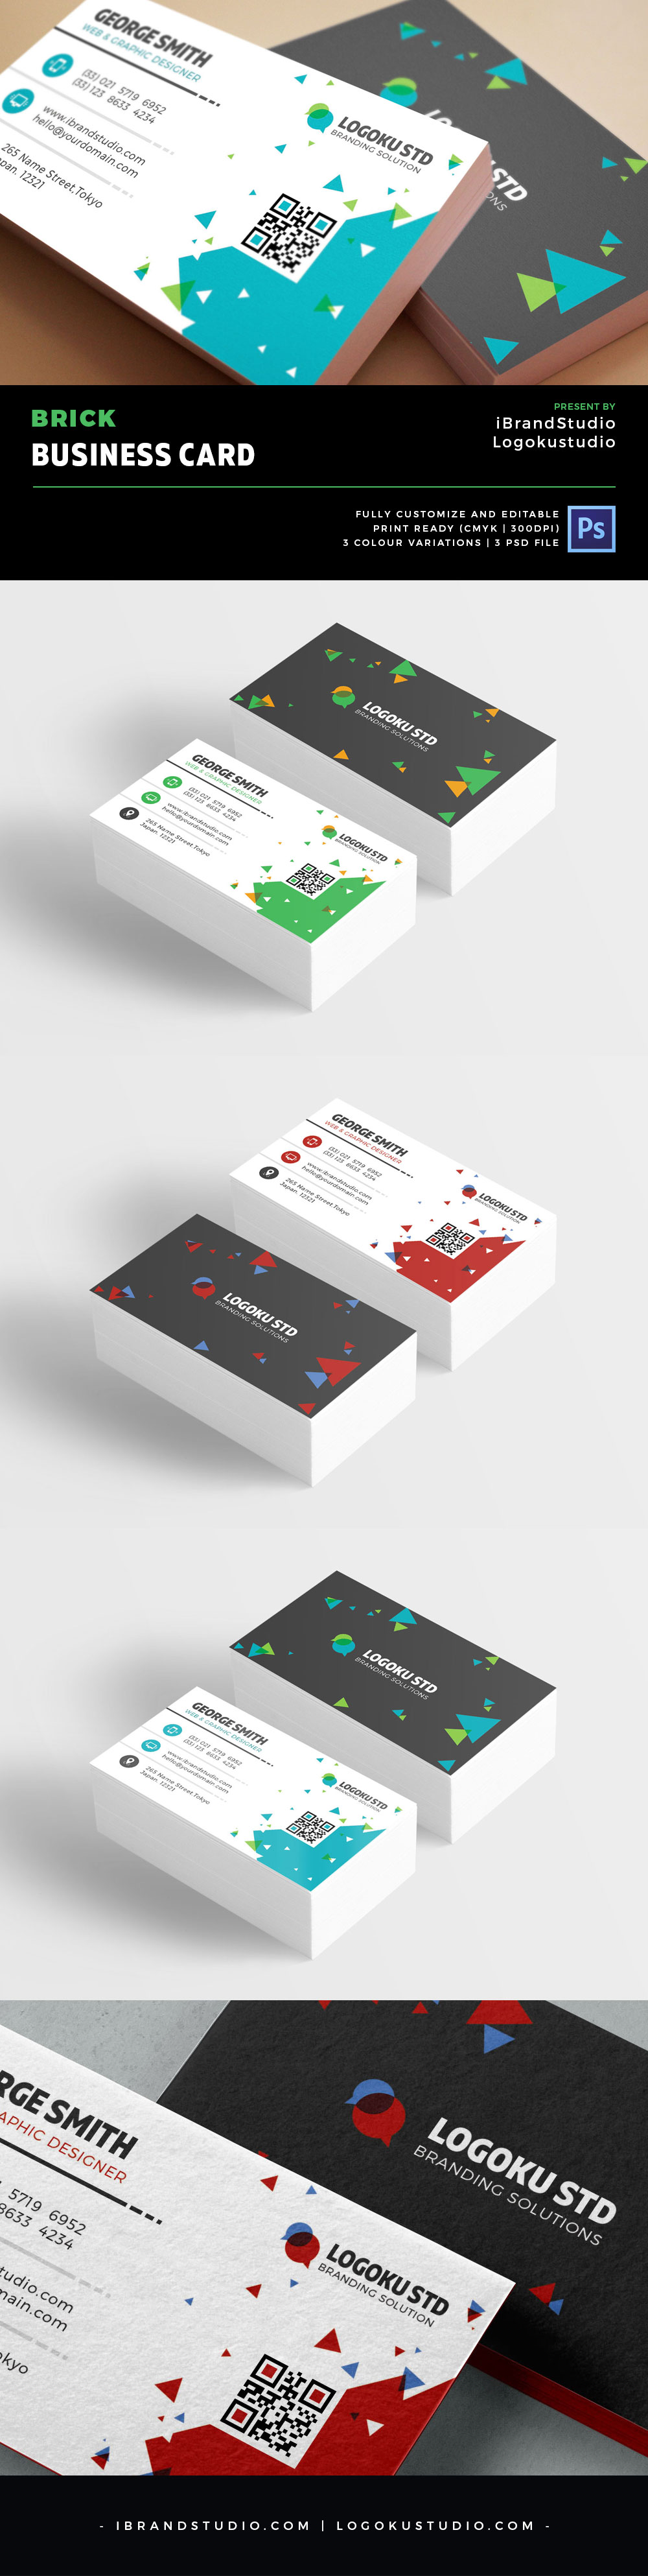 free brick business card template 3 colors psd